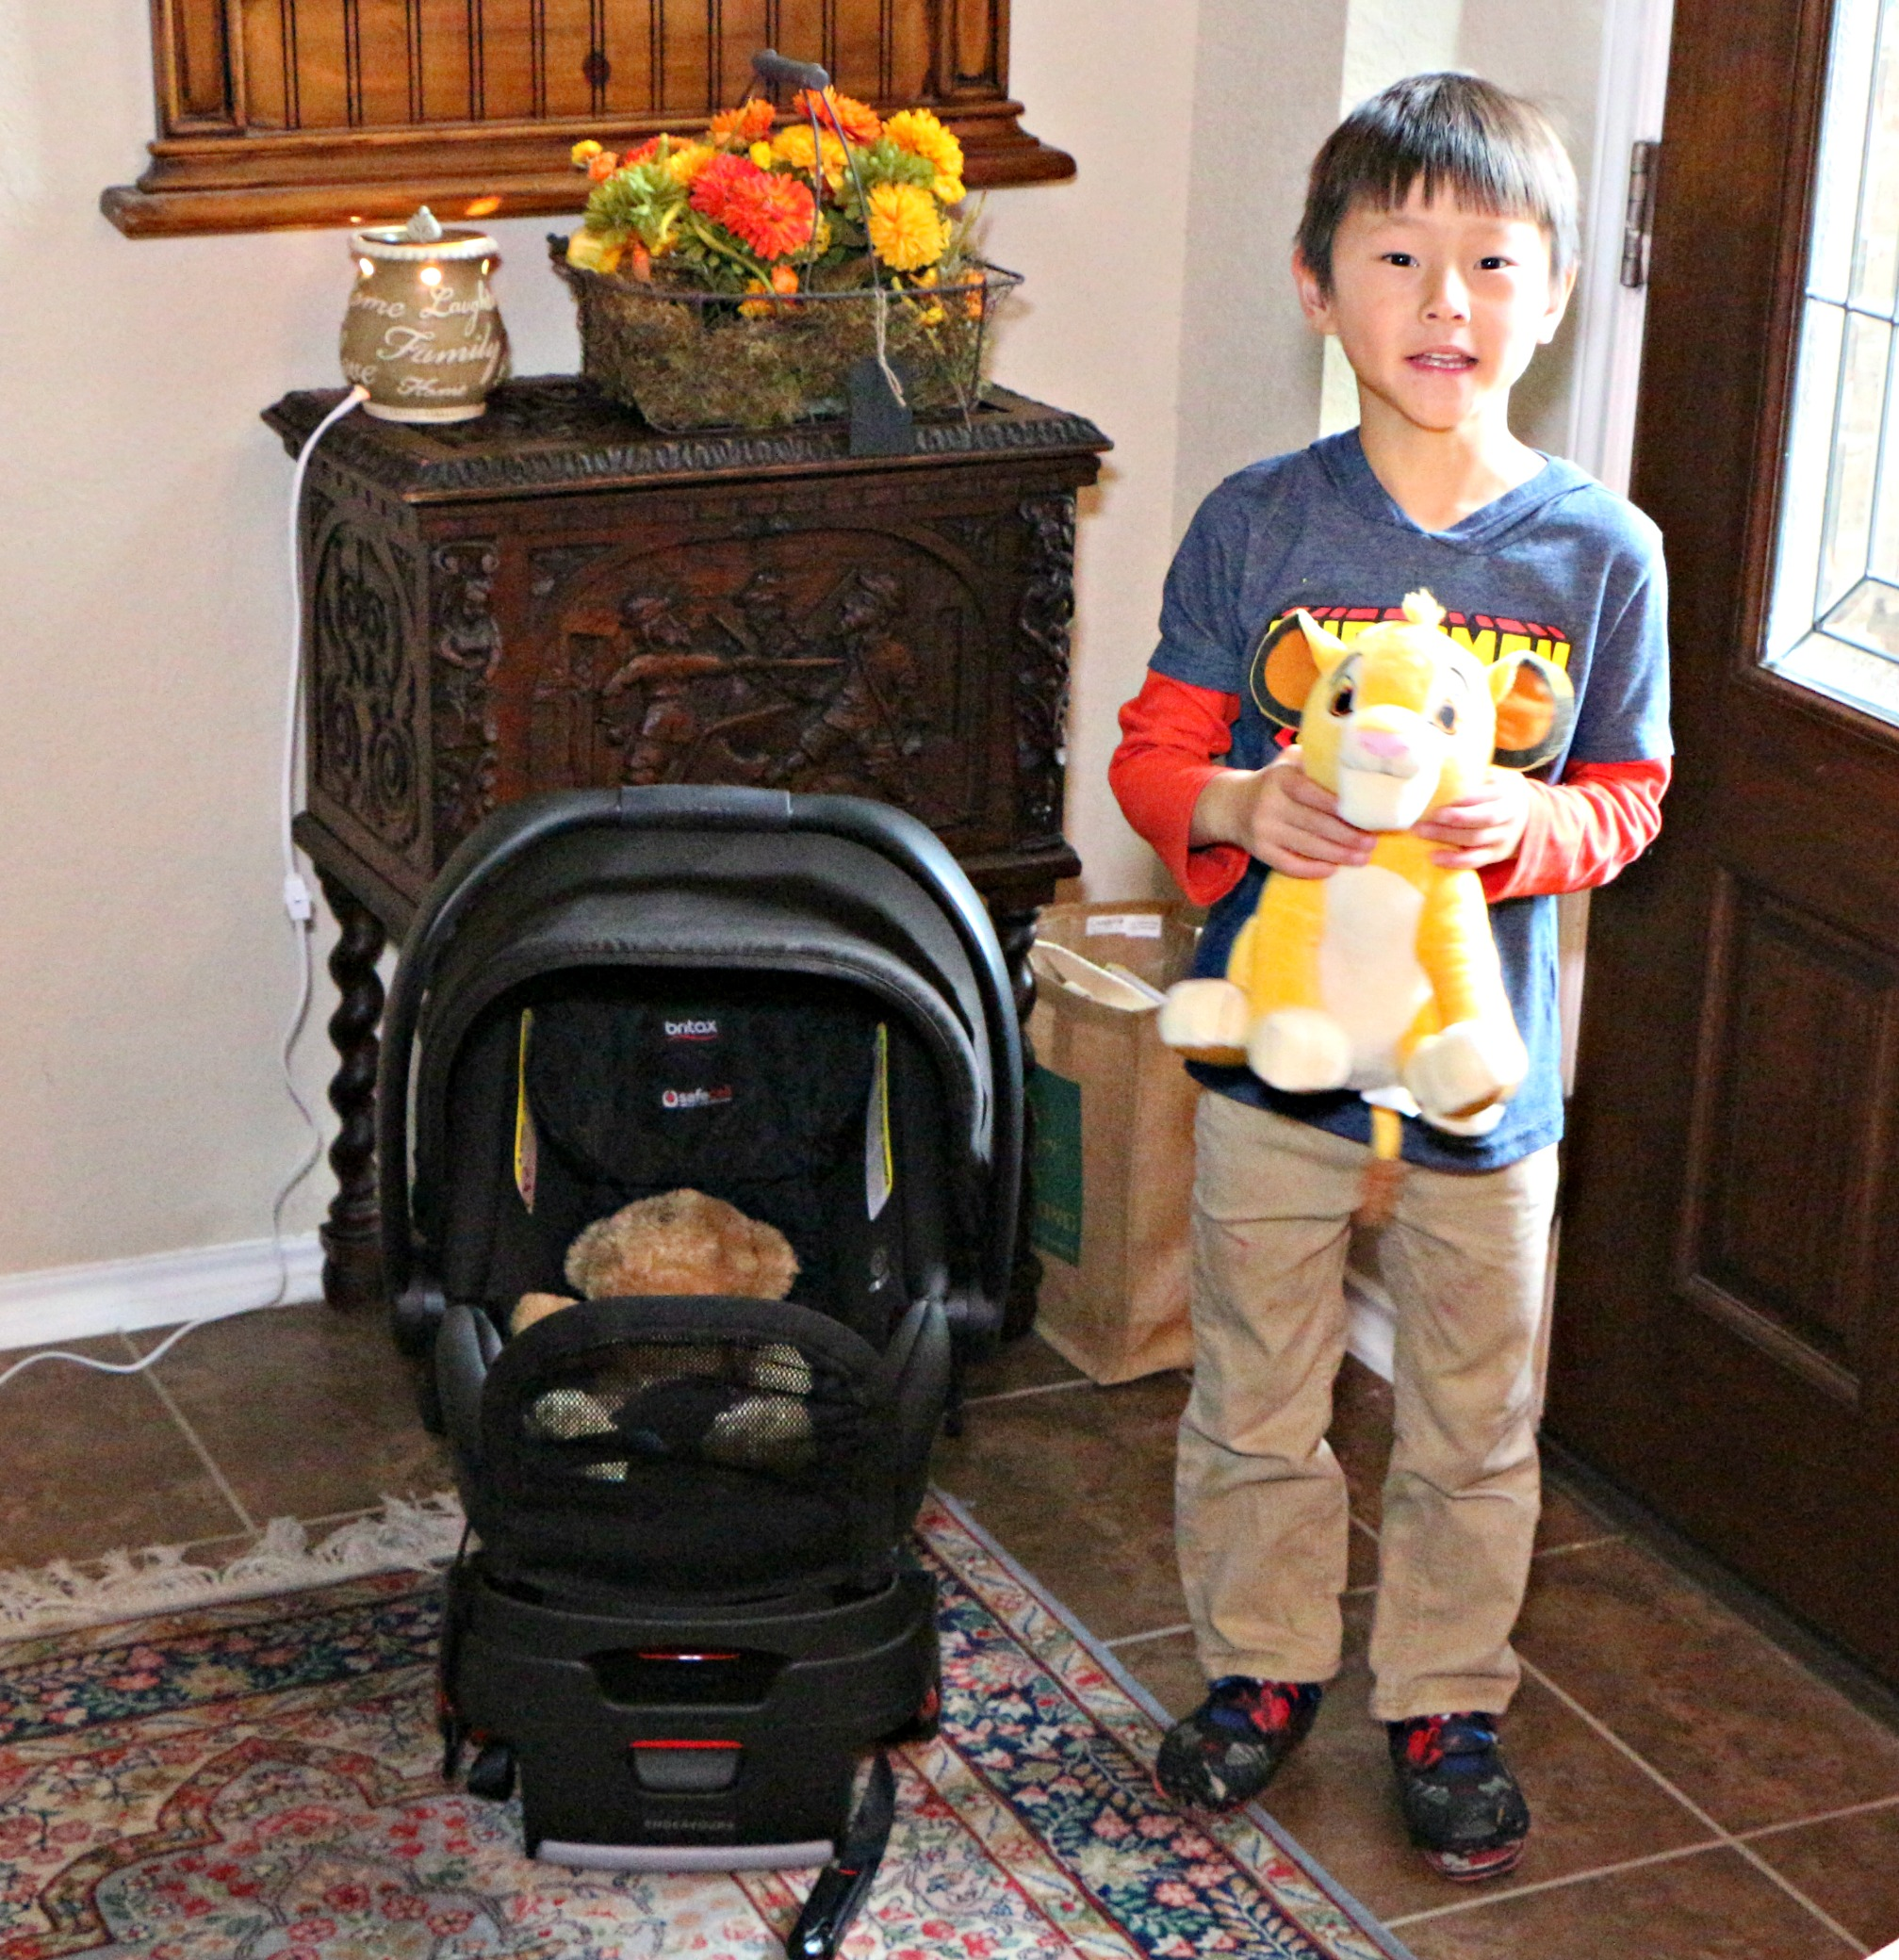 Review of the Britax Endeavours Car Seat|Ripped Jeans and Bifocals